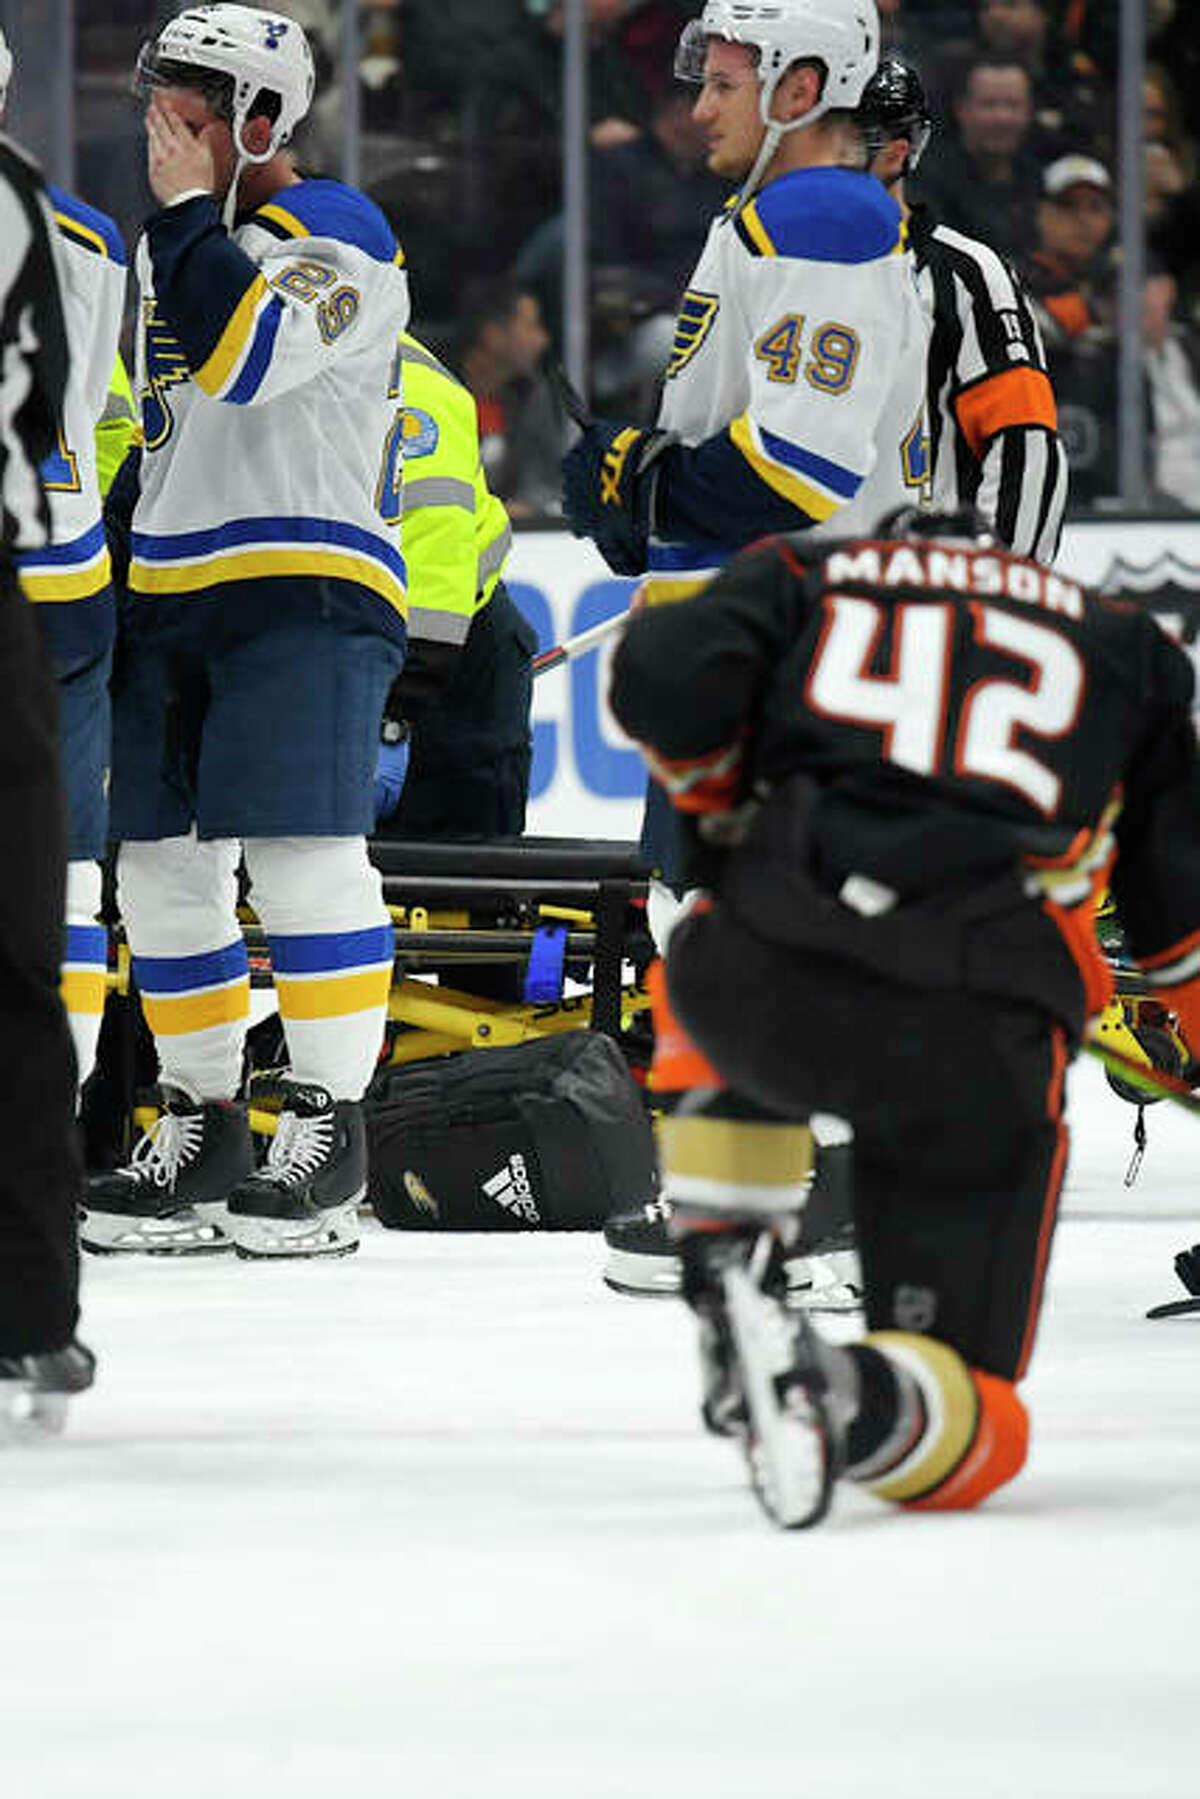 In a Feb. 11 photo, Blues defenseman Vince Dunn, left, wipes his faces as Anaheim Ducks defenseman Josh Manson kneels on the ice while Blues defenseman Jay Bouwmeester, who suffered a medical emergency, is worked on by medical personnel in Anaheim.